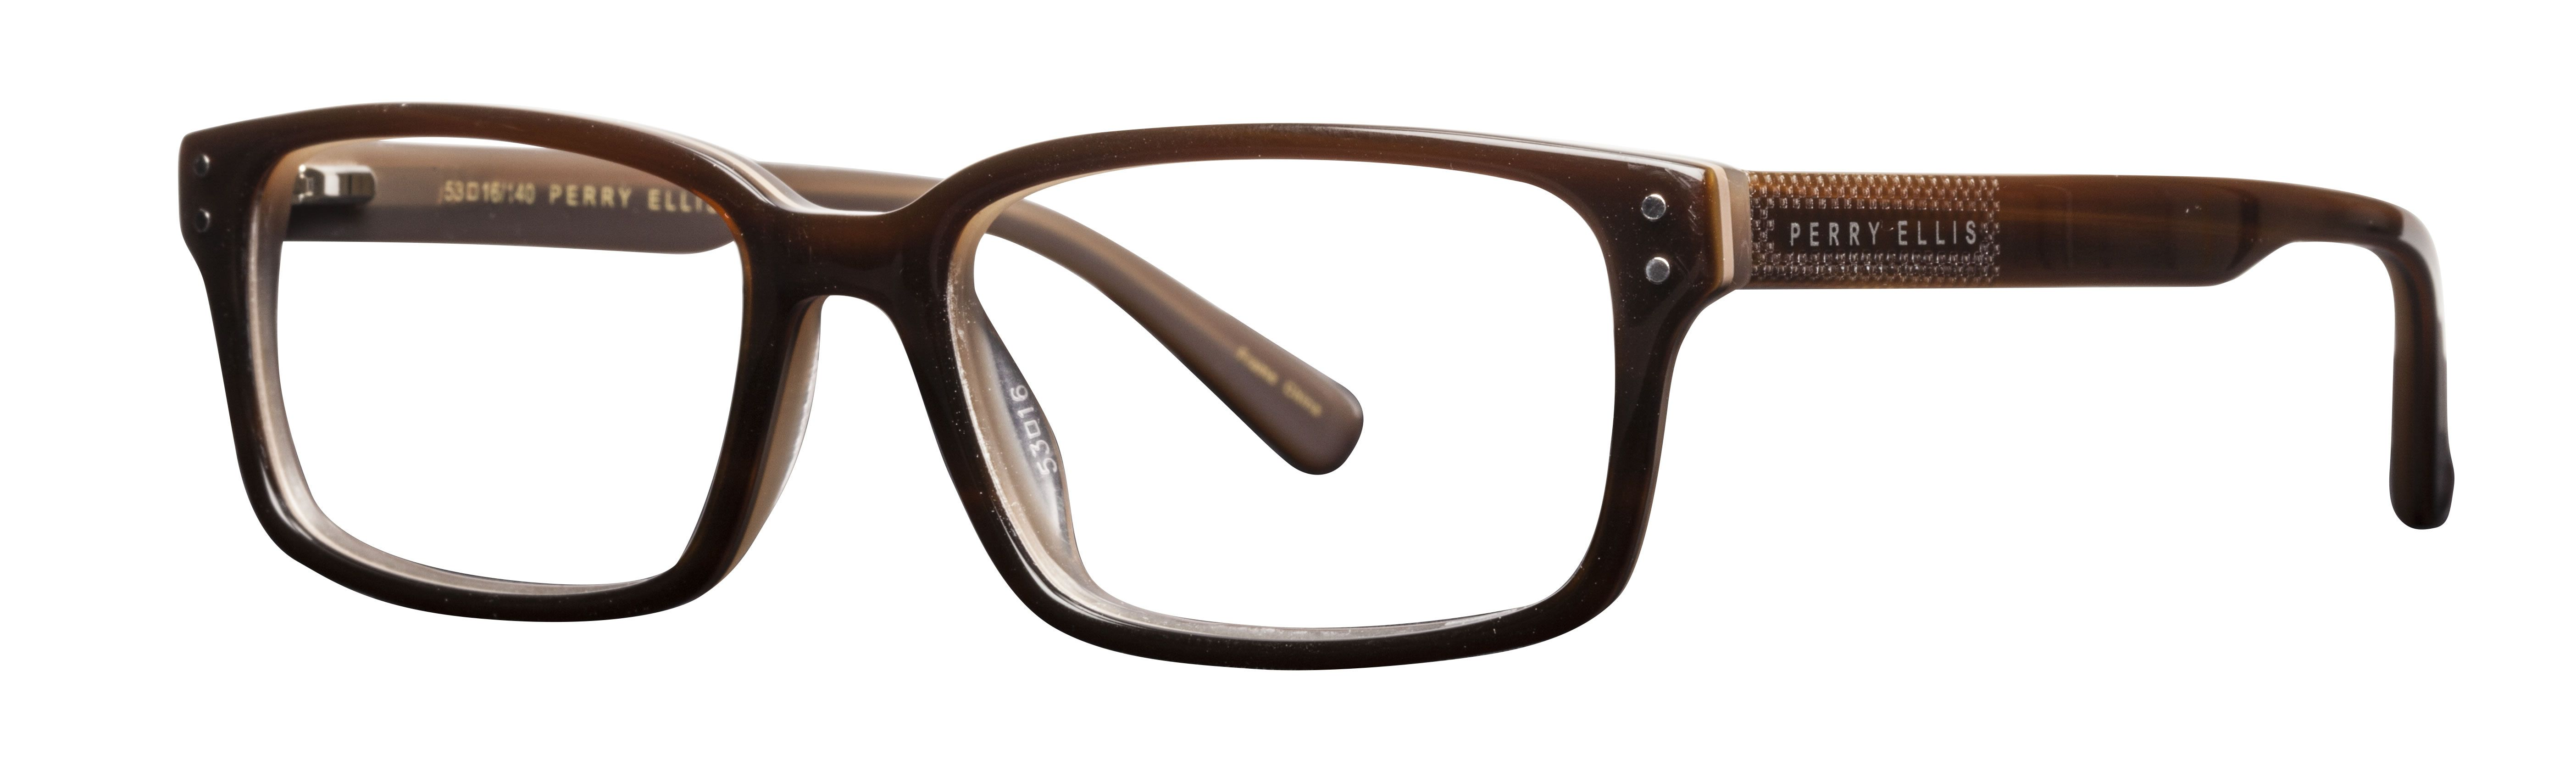 Perry Ellis Frames for Men | Davis Vision | People\'s Frame Choices ...